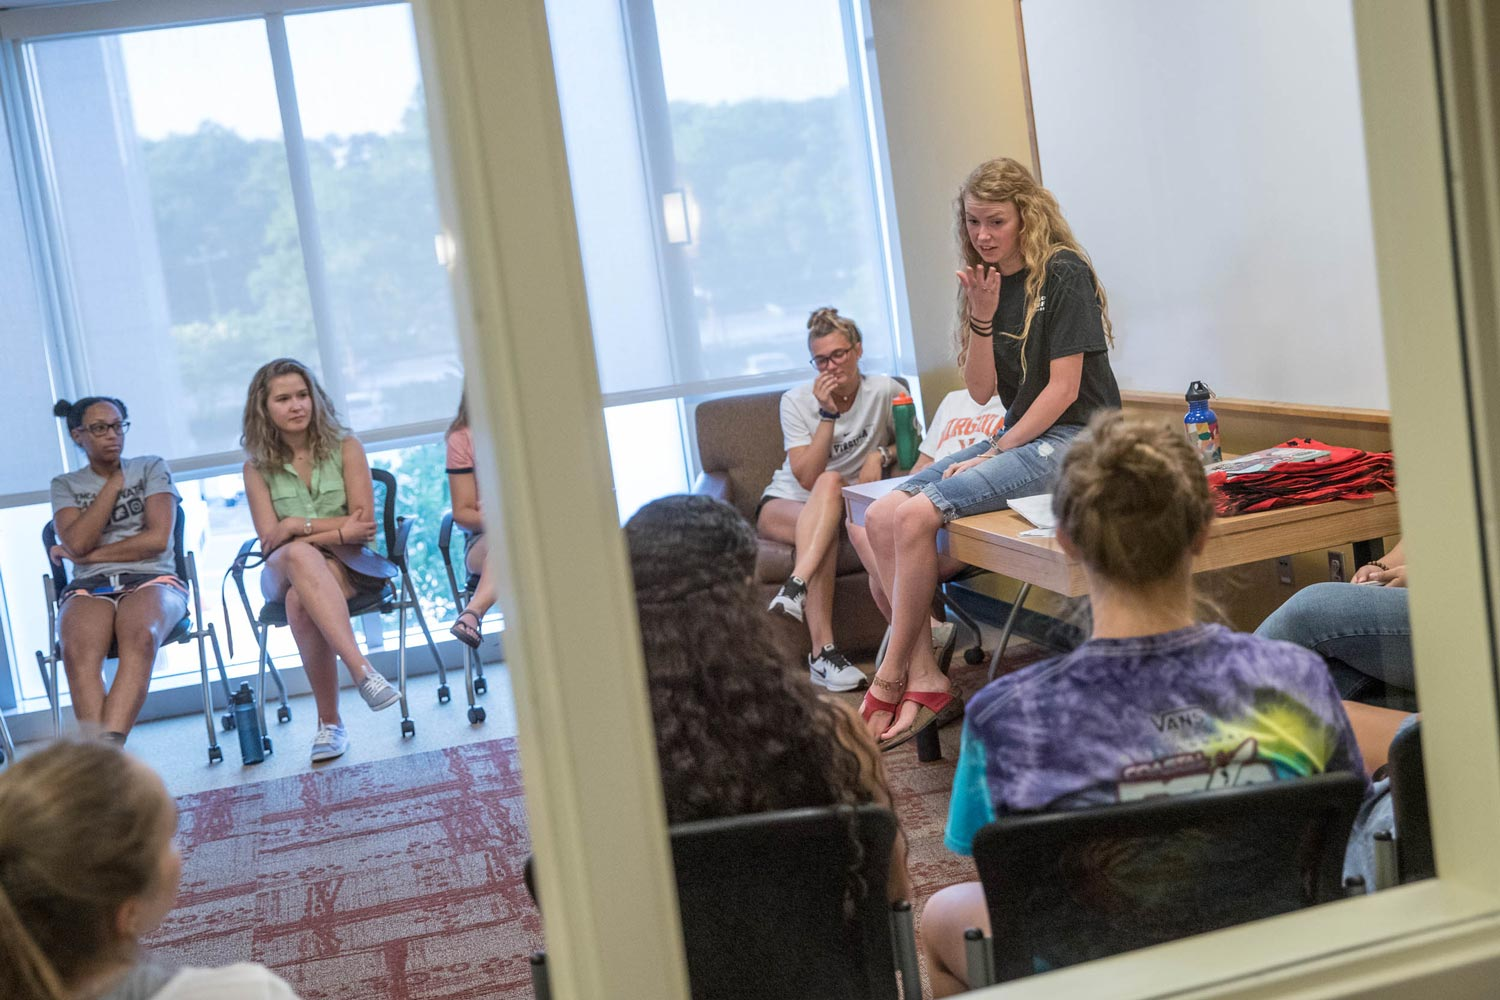 Students listen to resident adviser Rebecca Lewis last August in a meeting room on the third floor of Lile-Maupin House. (Photo by Sanjay Suchak, University Communications)